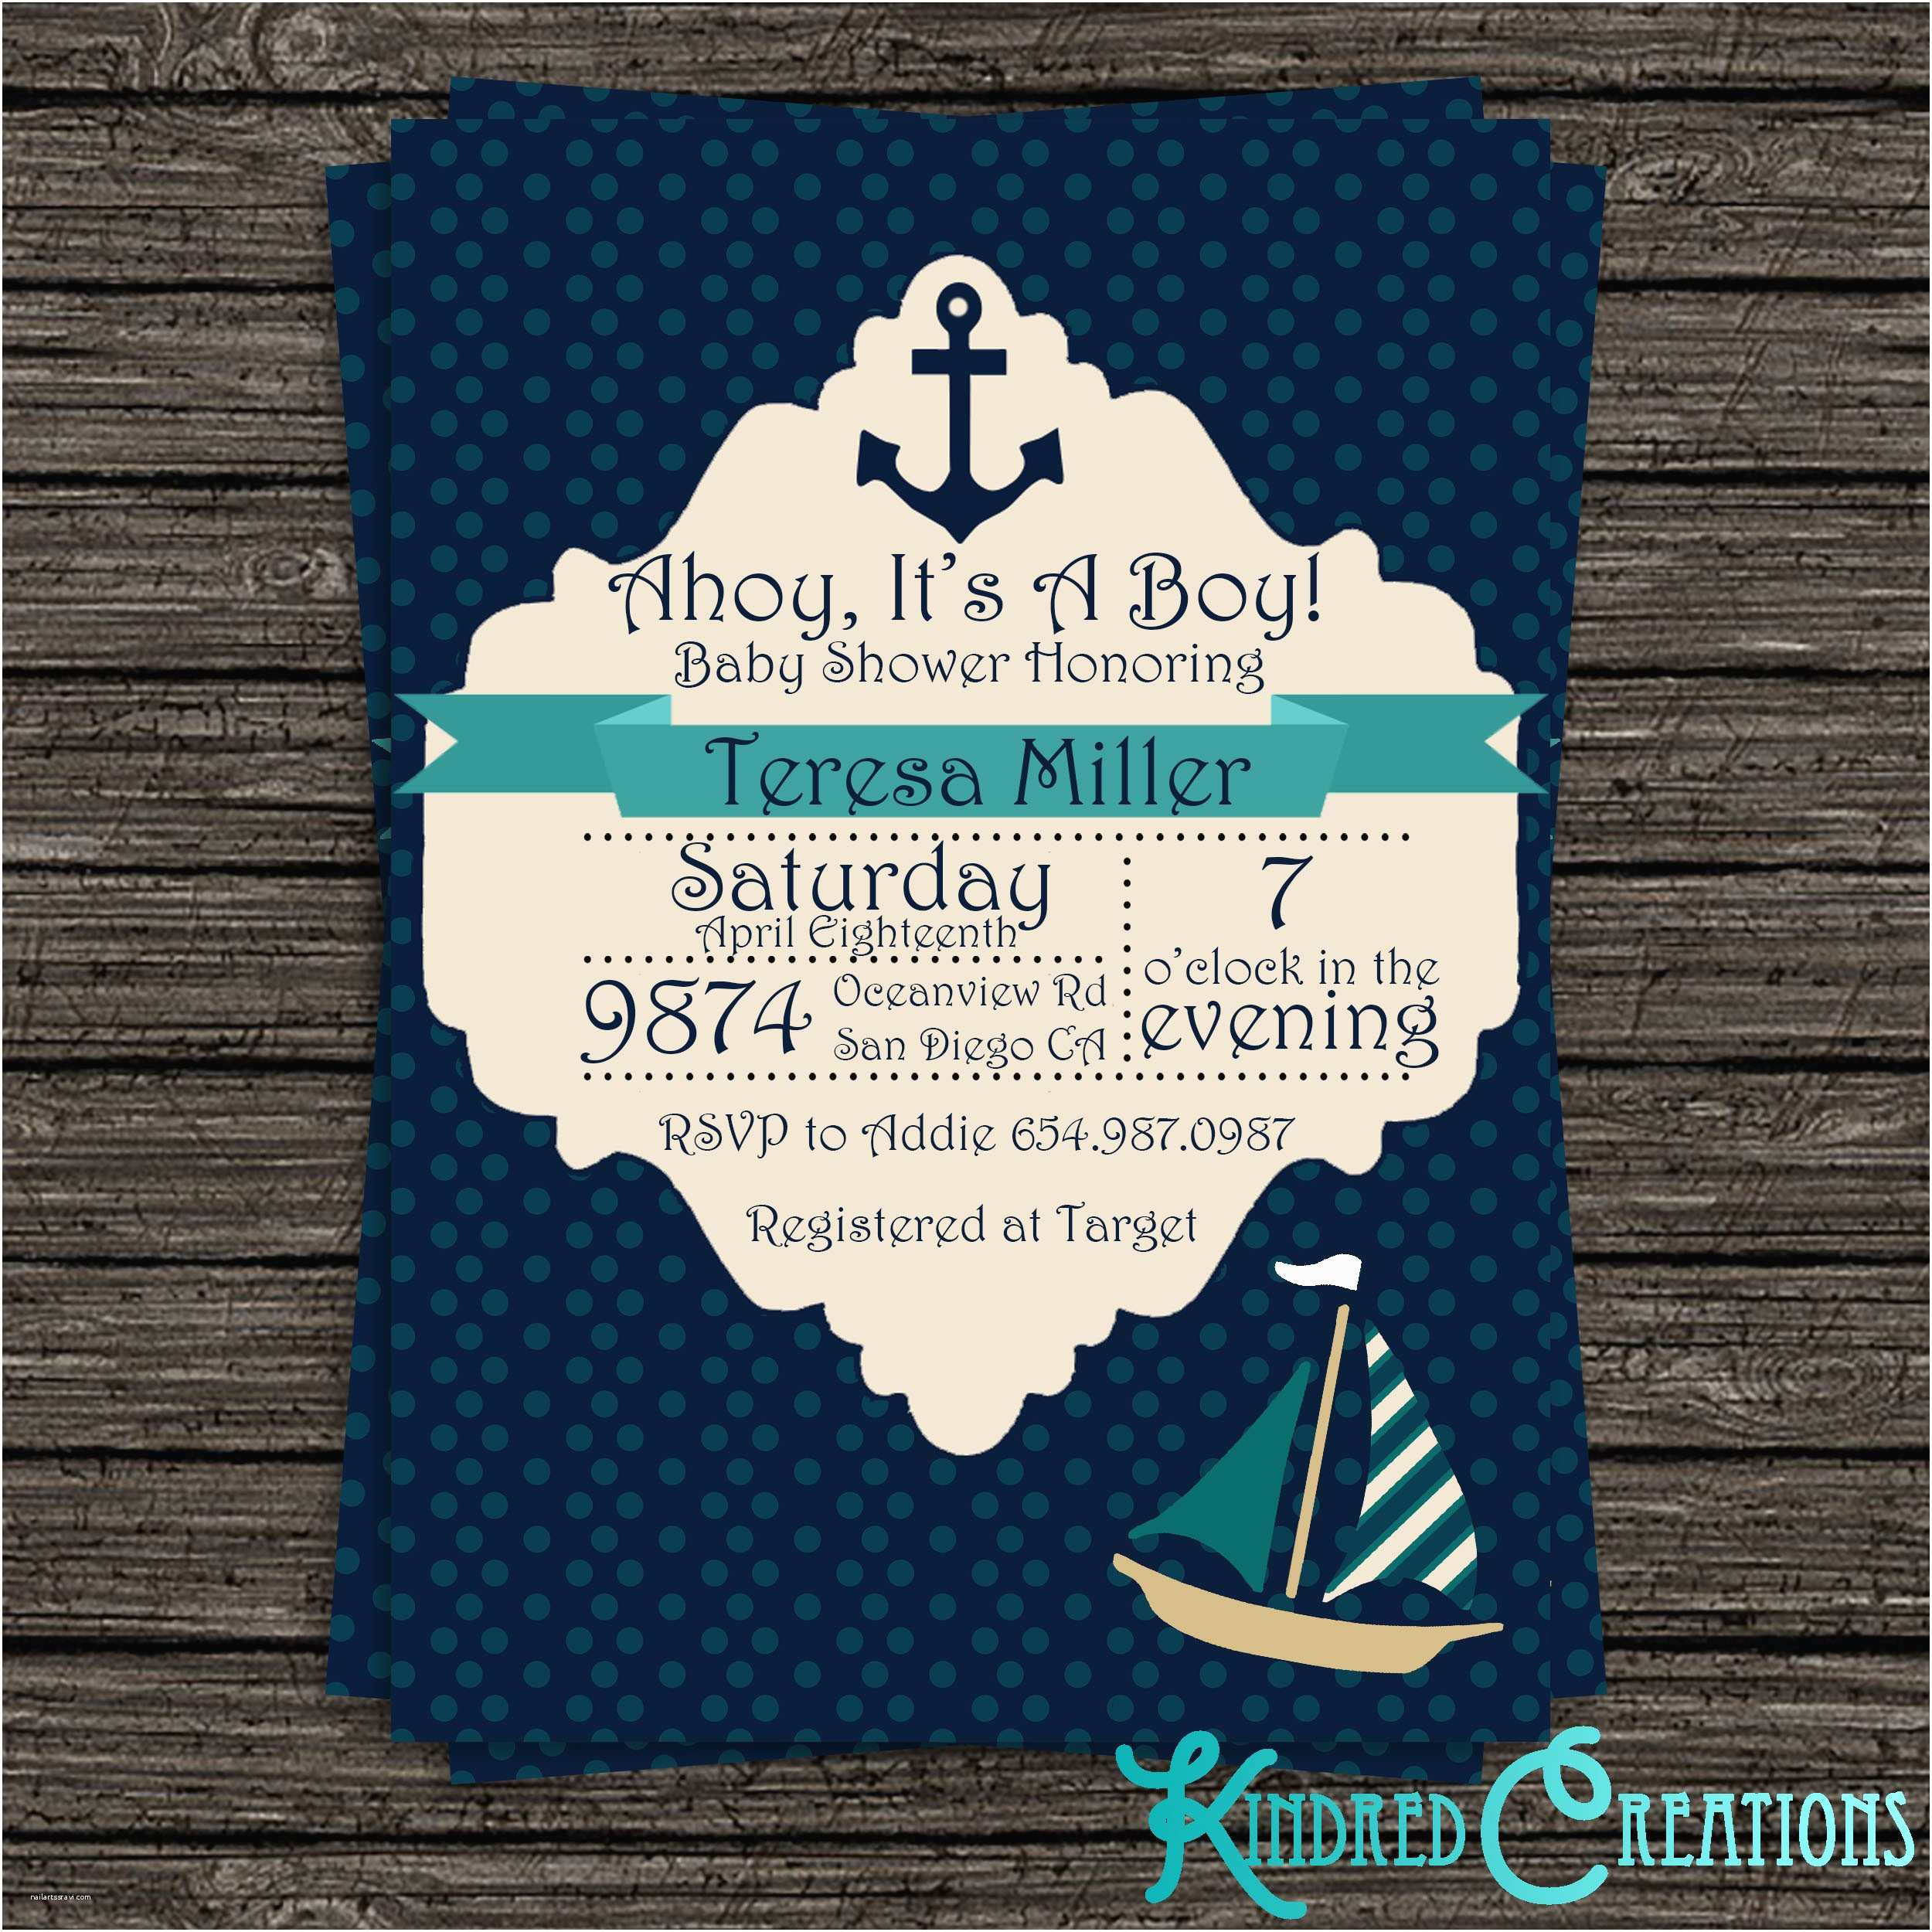 Sailor Baby Shower Invitations Nautical Baby Boy Shower Invitation – Kindred Creations